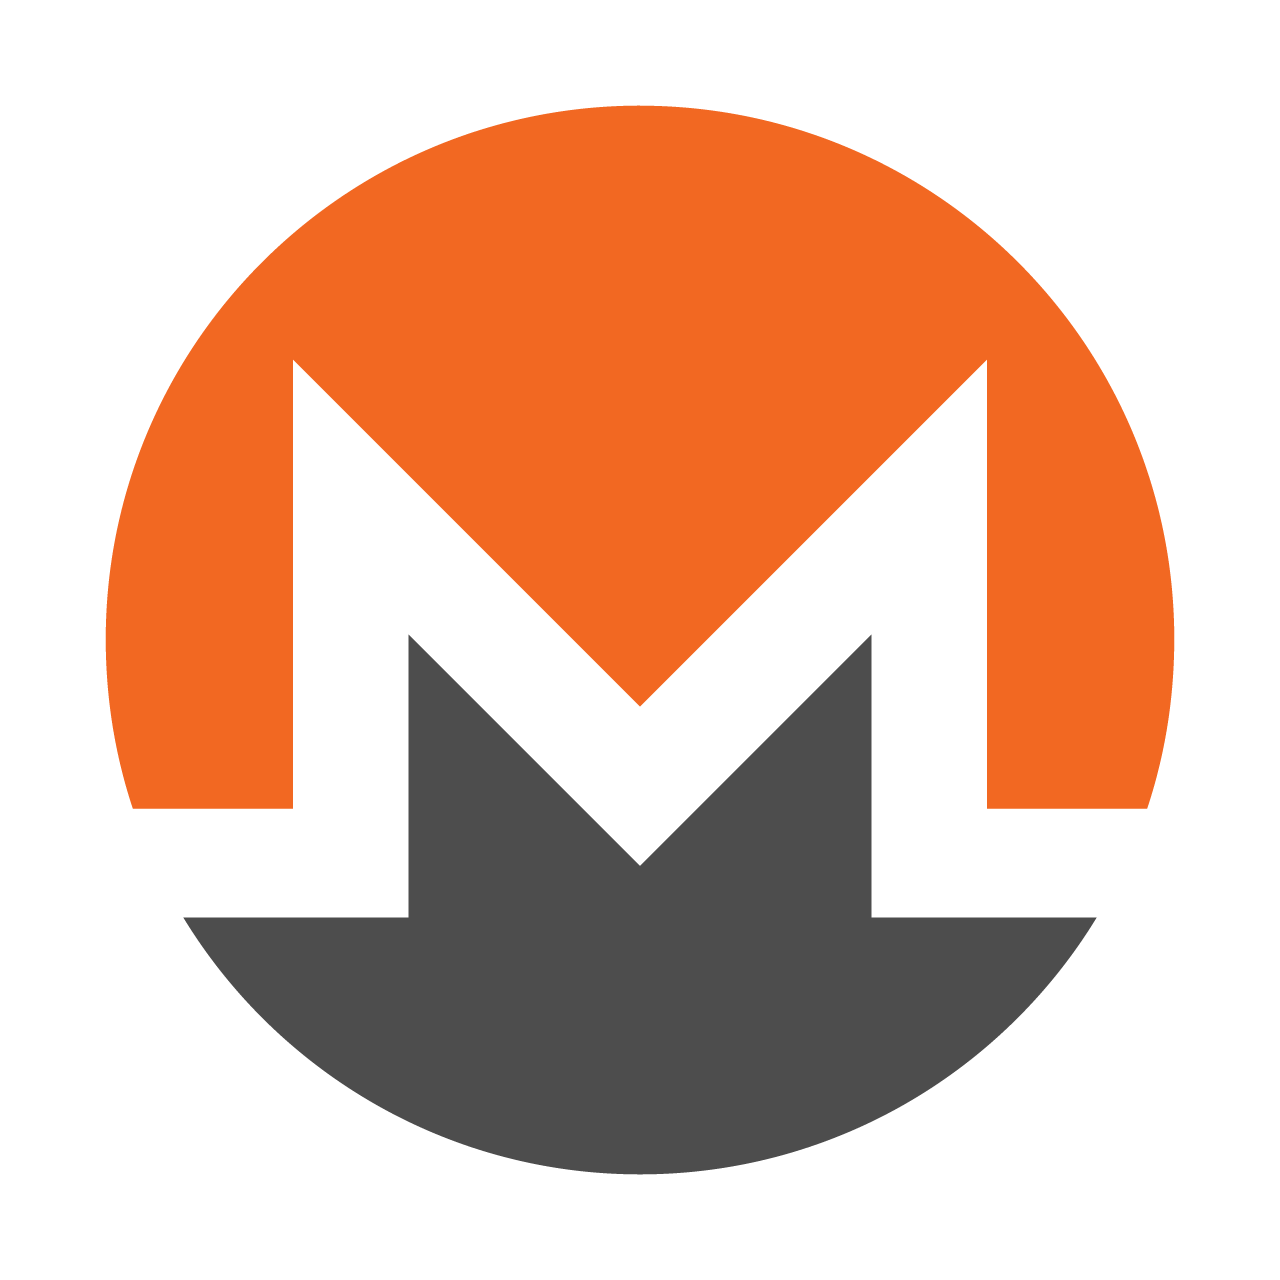 press-kit/symbols/monero-symbol-on-white-1280.png